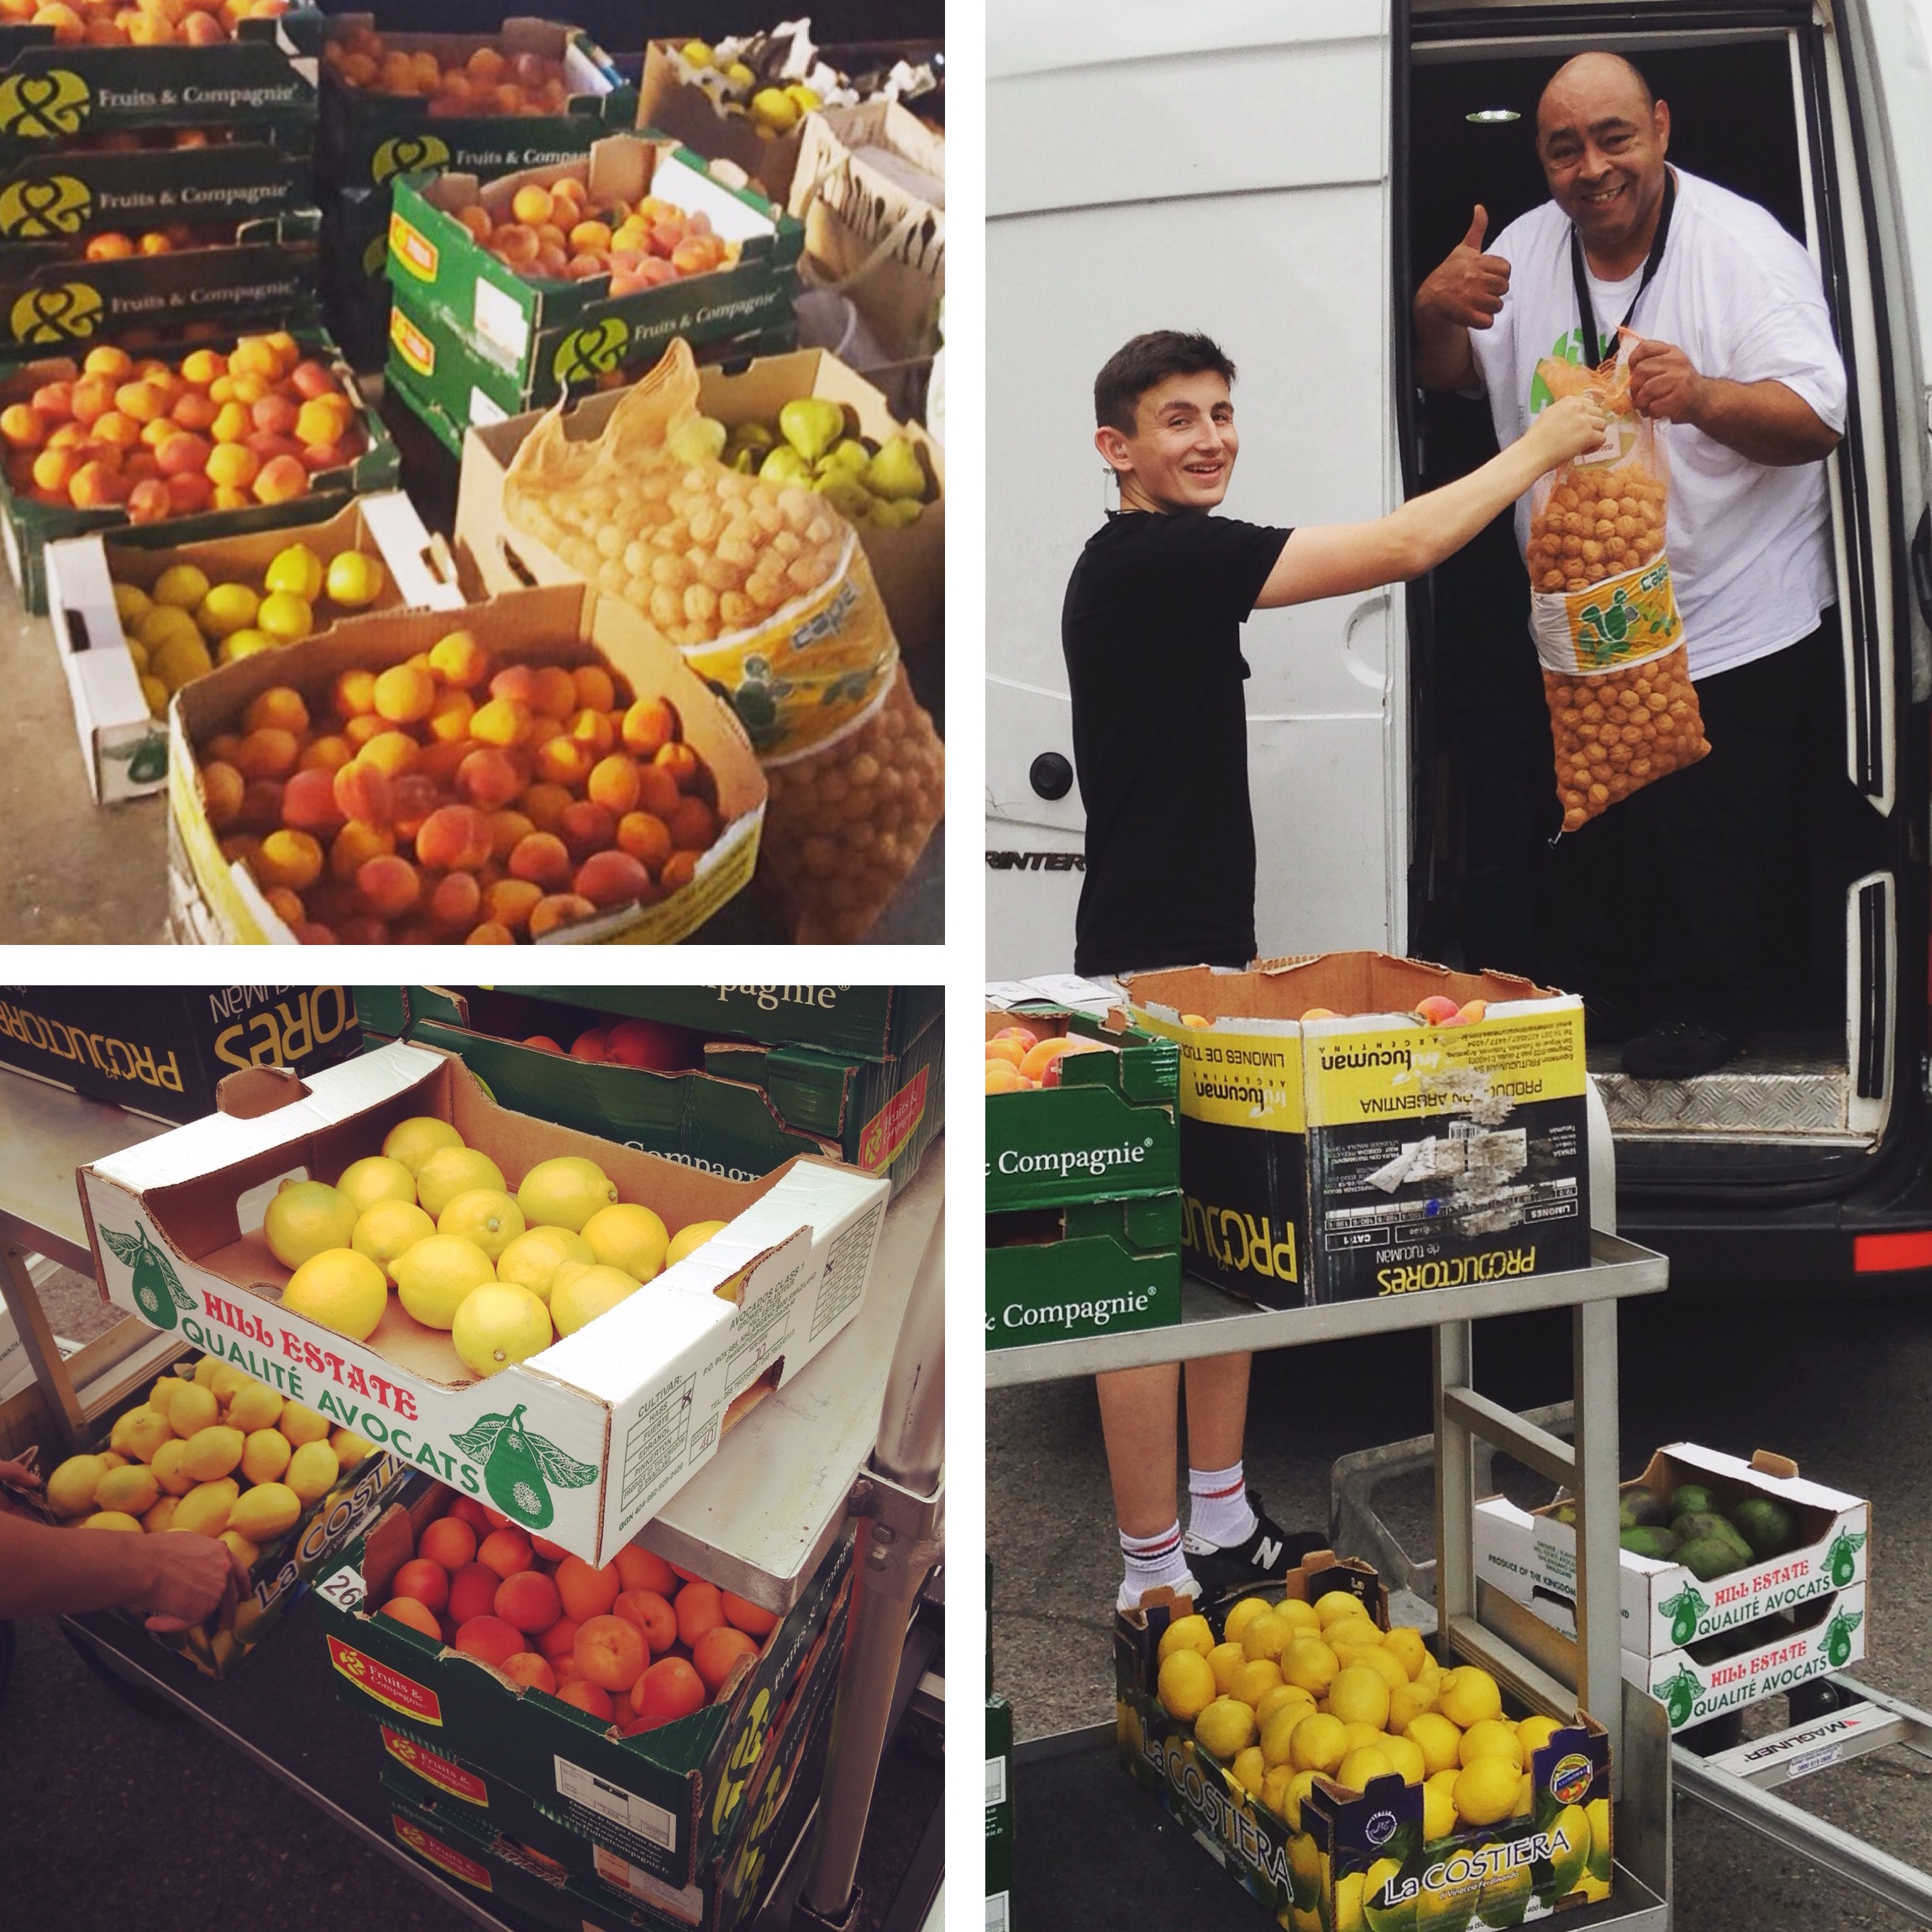 Donating to City Harvest